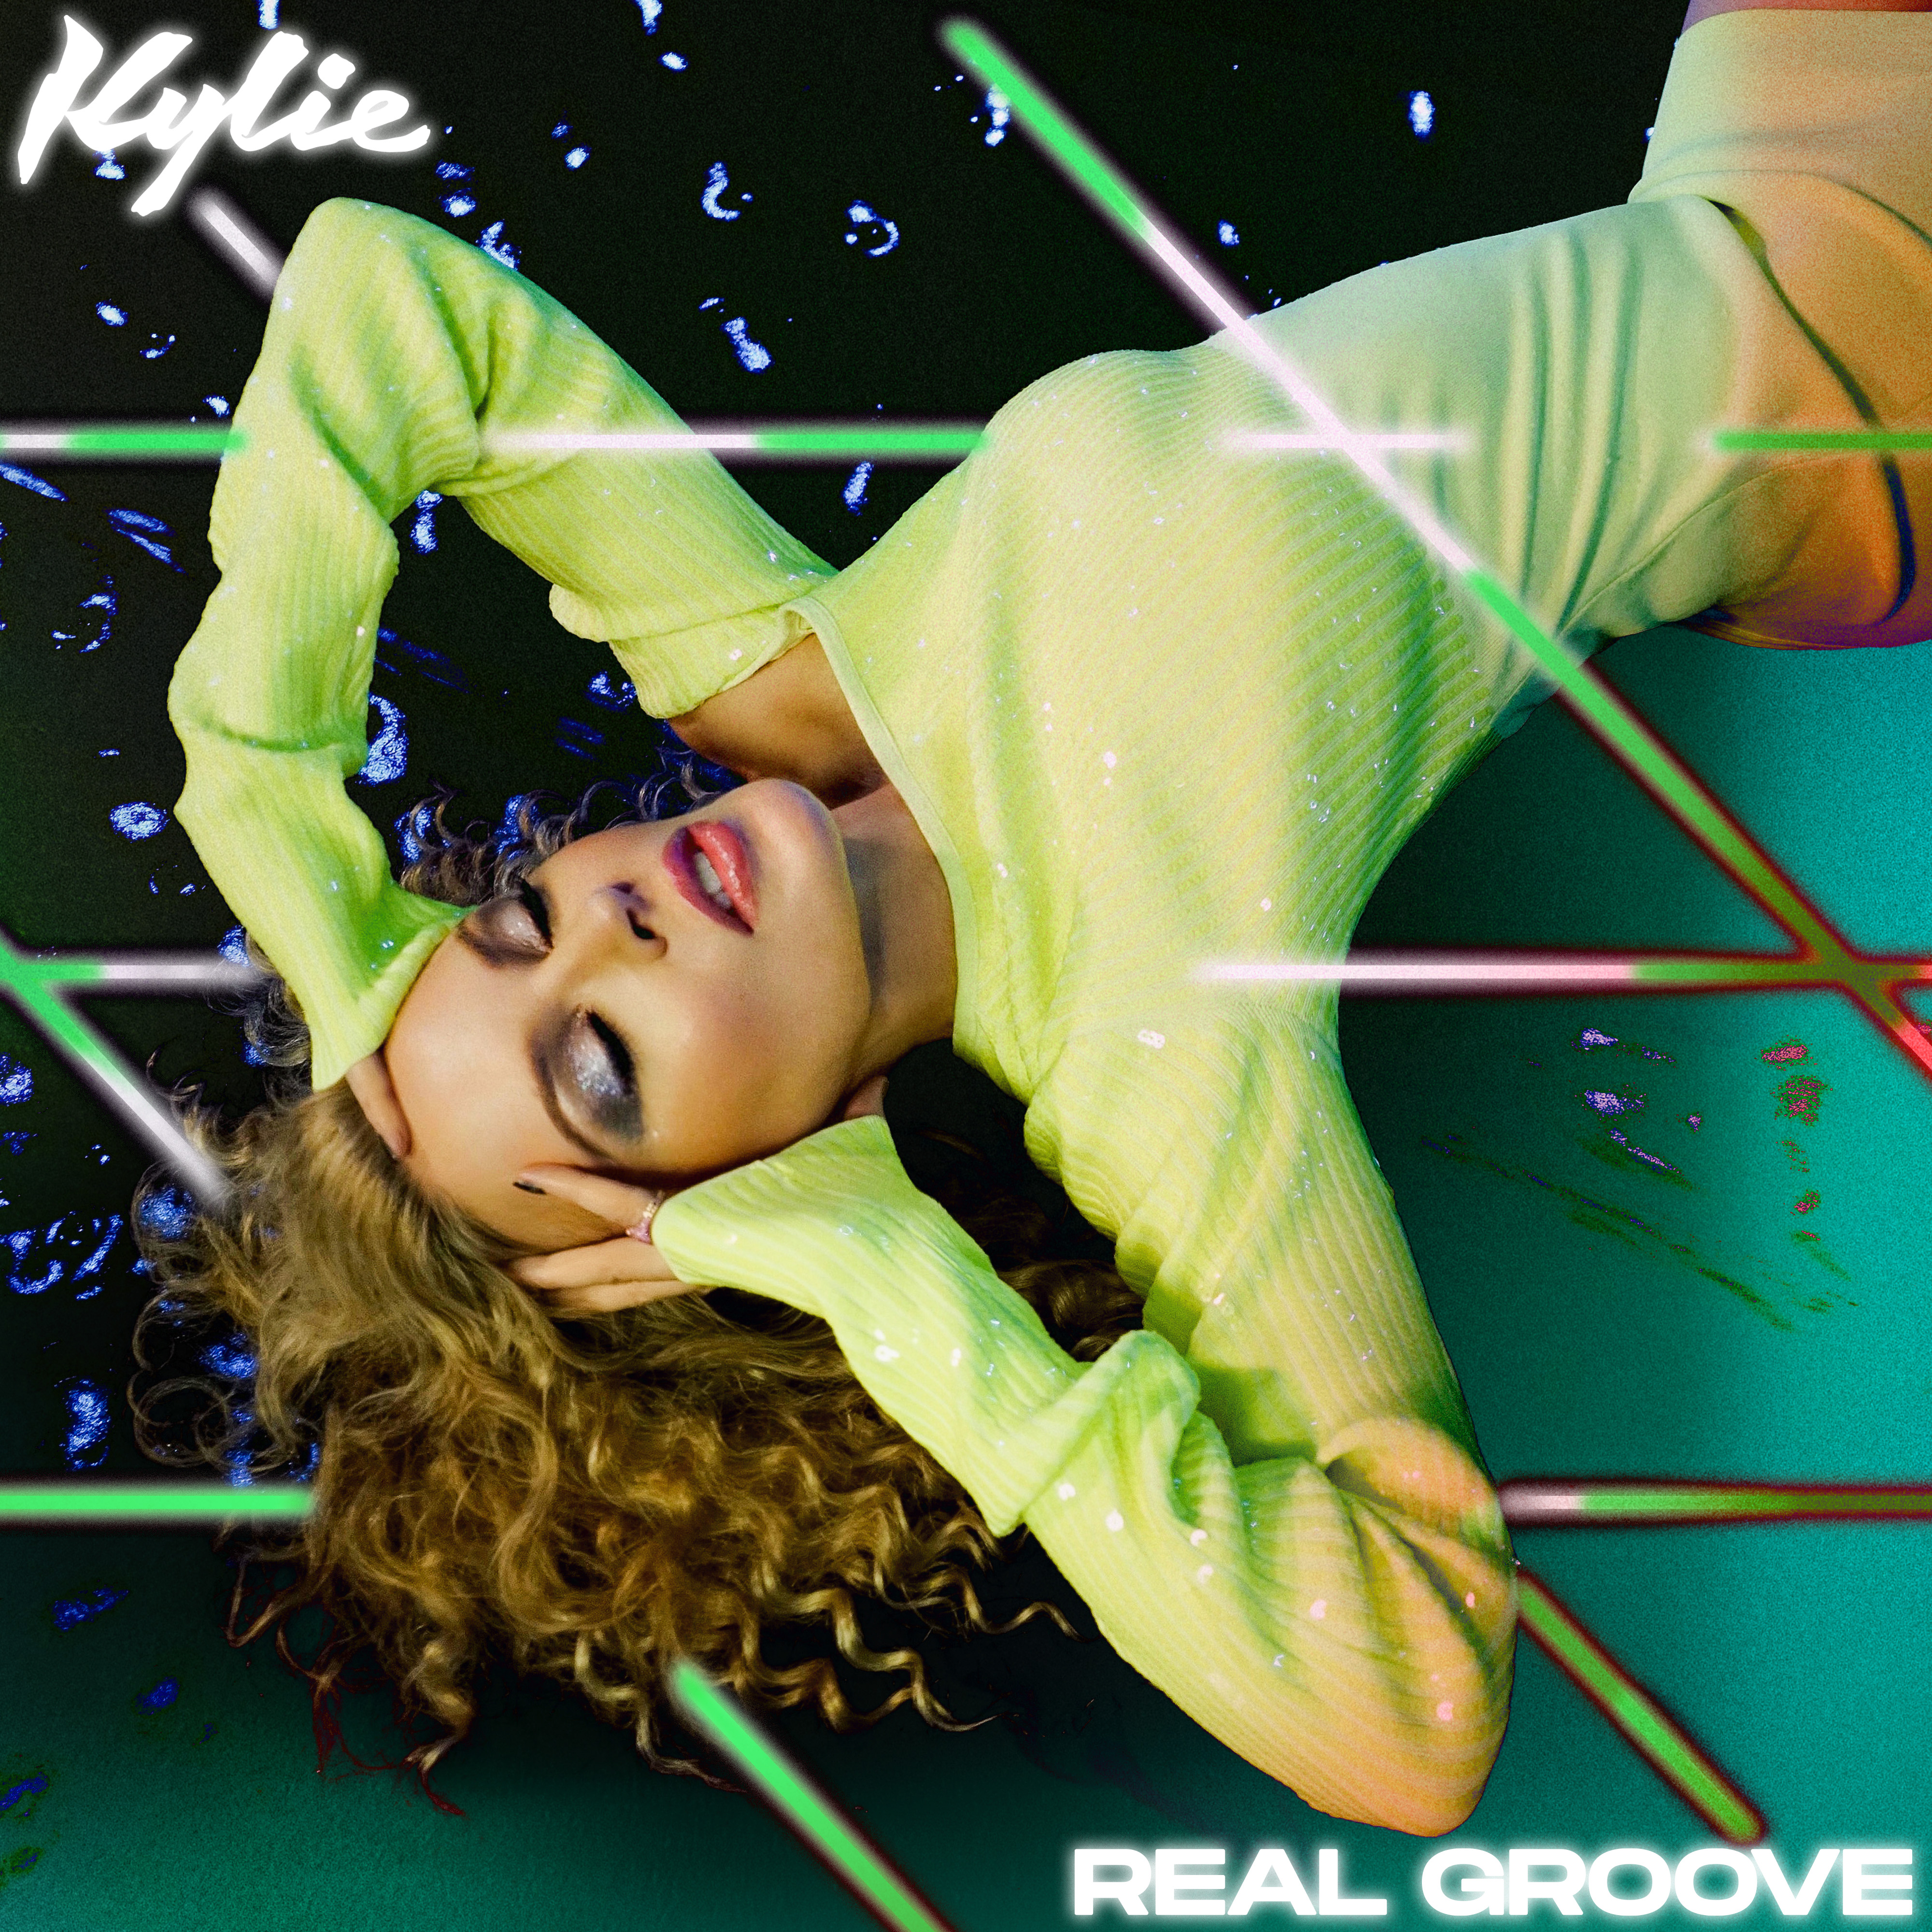 Kylie Minogue - Real Groove (feat Dua Lipa)